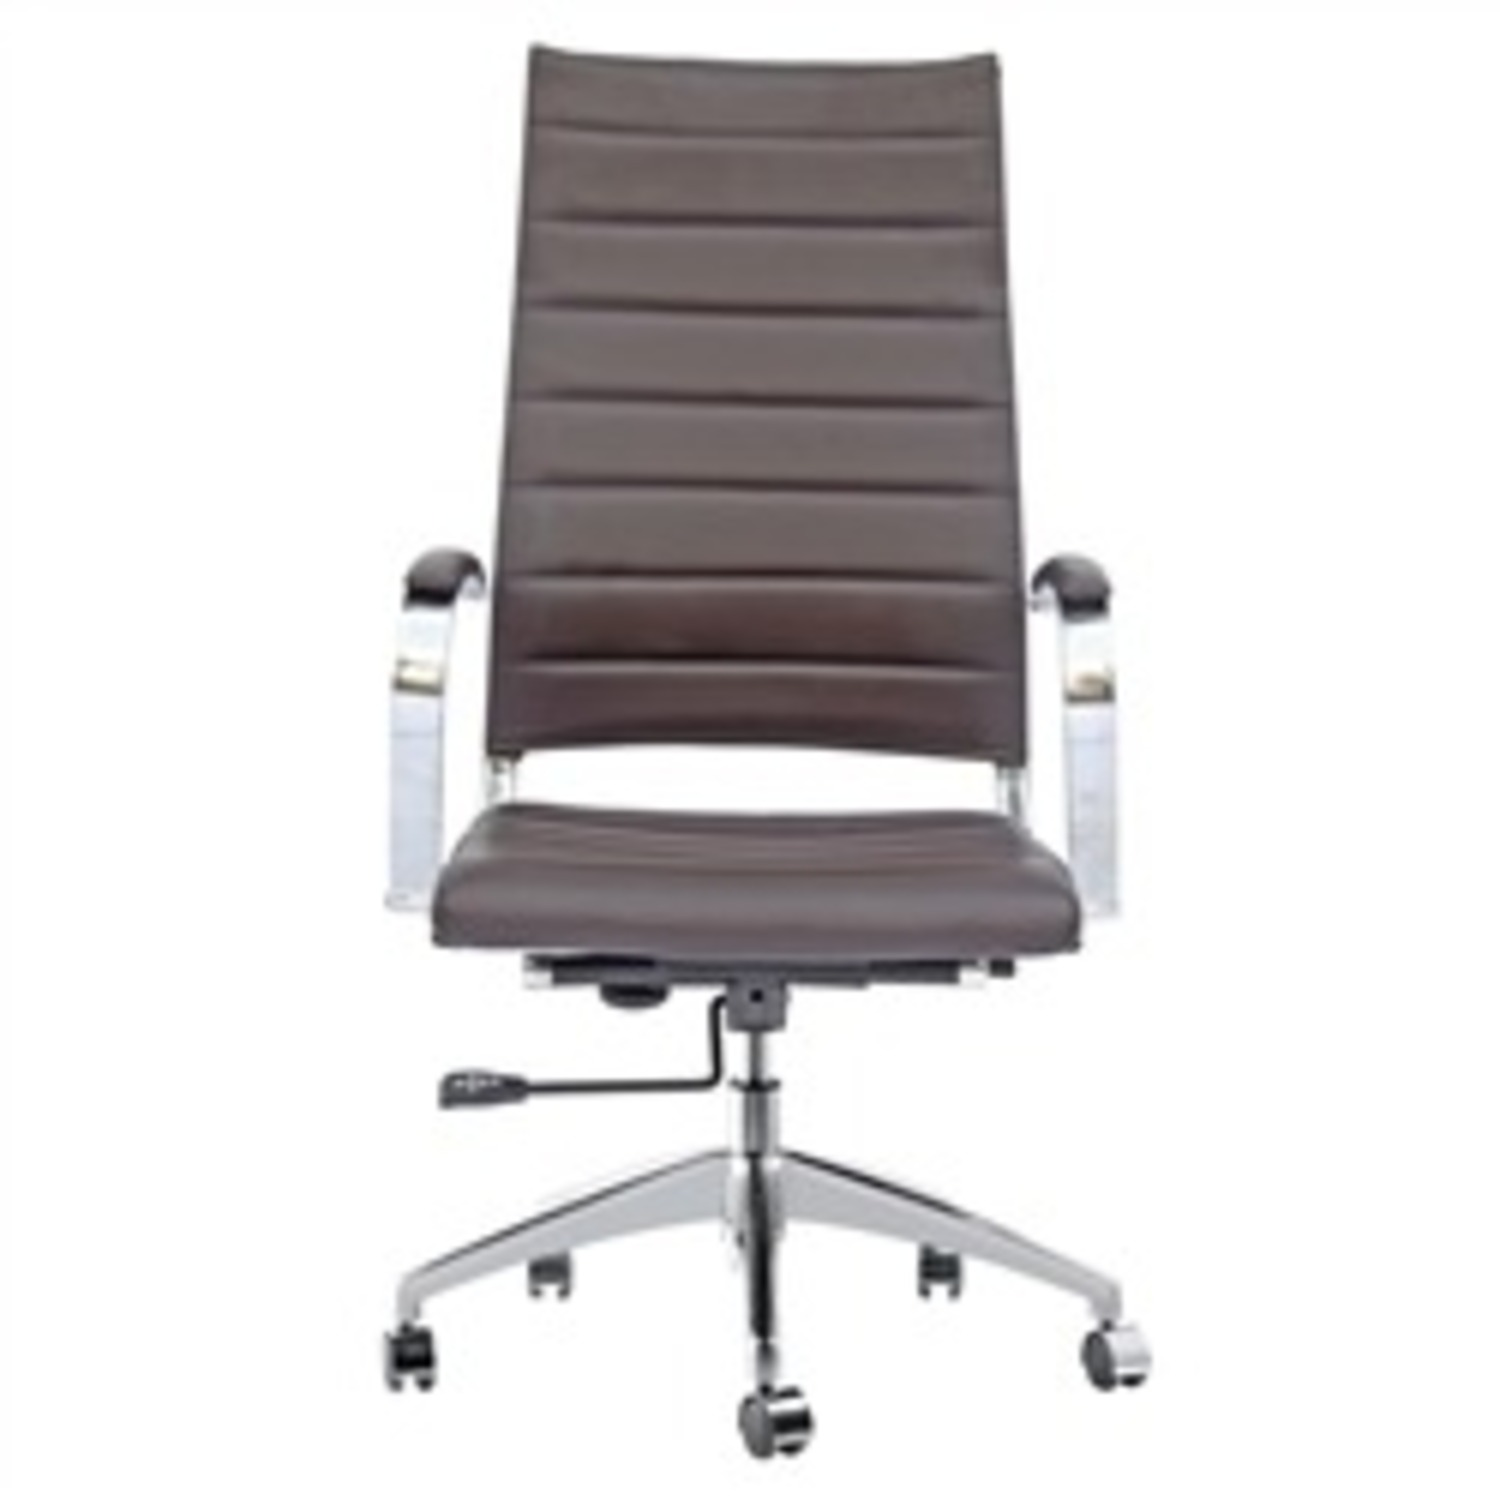 Office Chair W/ High Back Seat In Dark Brown - image-1